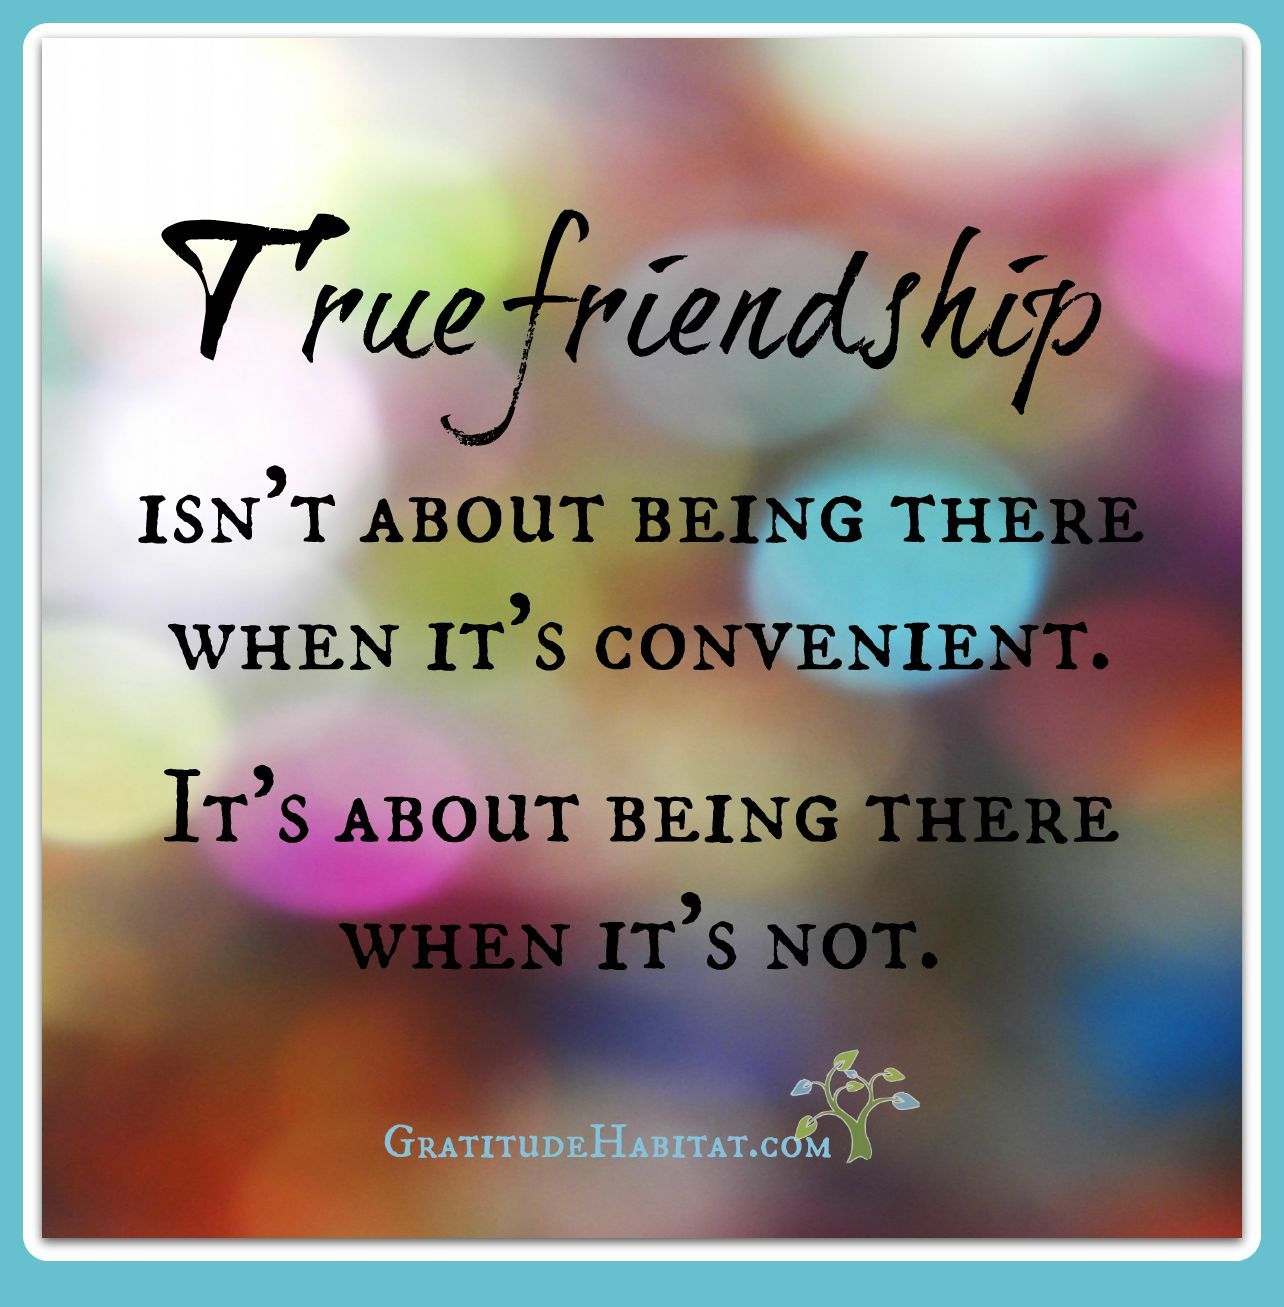 True Friendship Is About Being There When It's Not